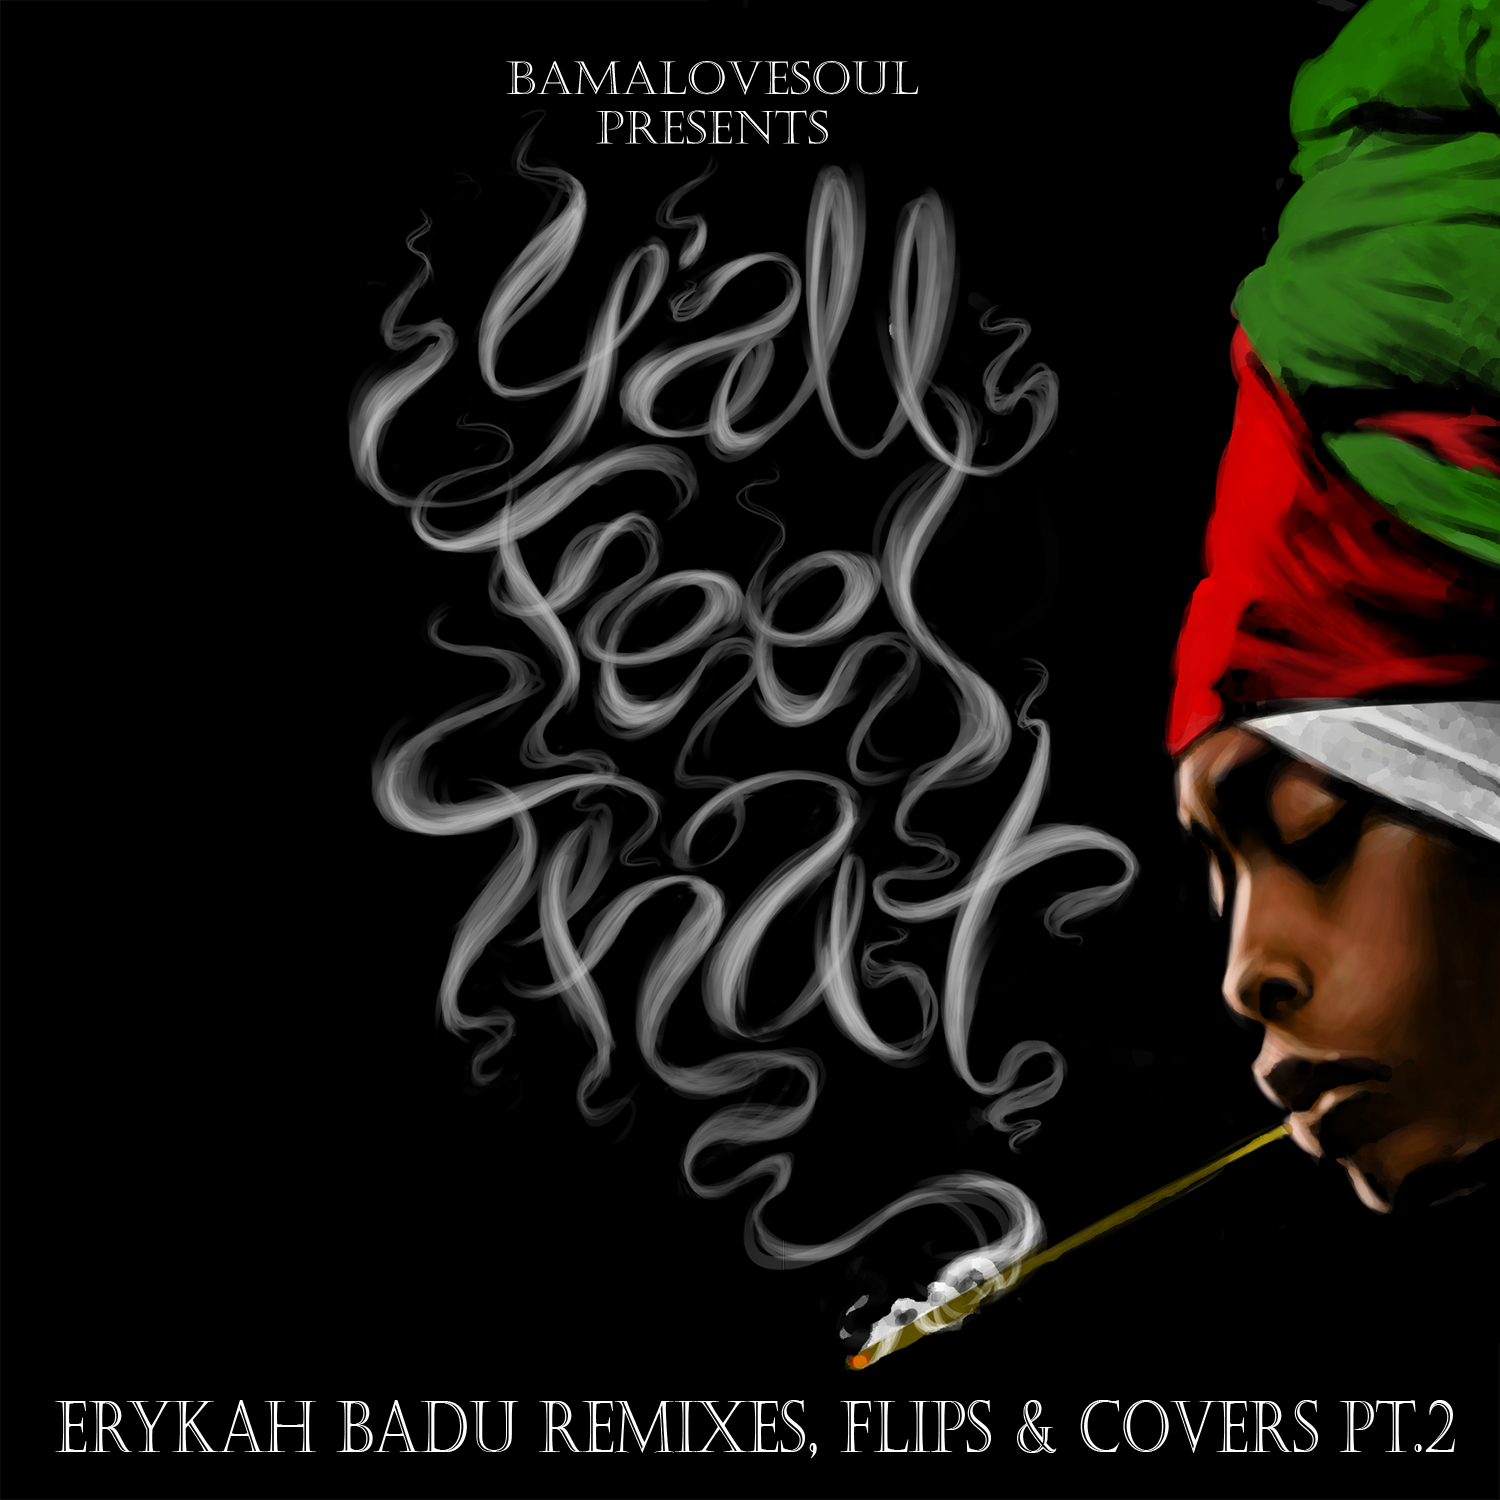 BamaLoveSoul Presents: Y'all Feel That: Erykah Badu Remixes, Flips & Covers Pt. 2